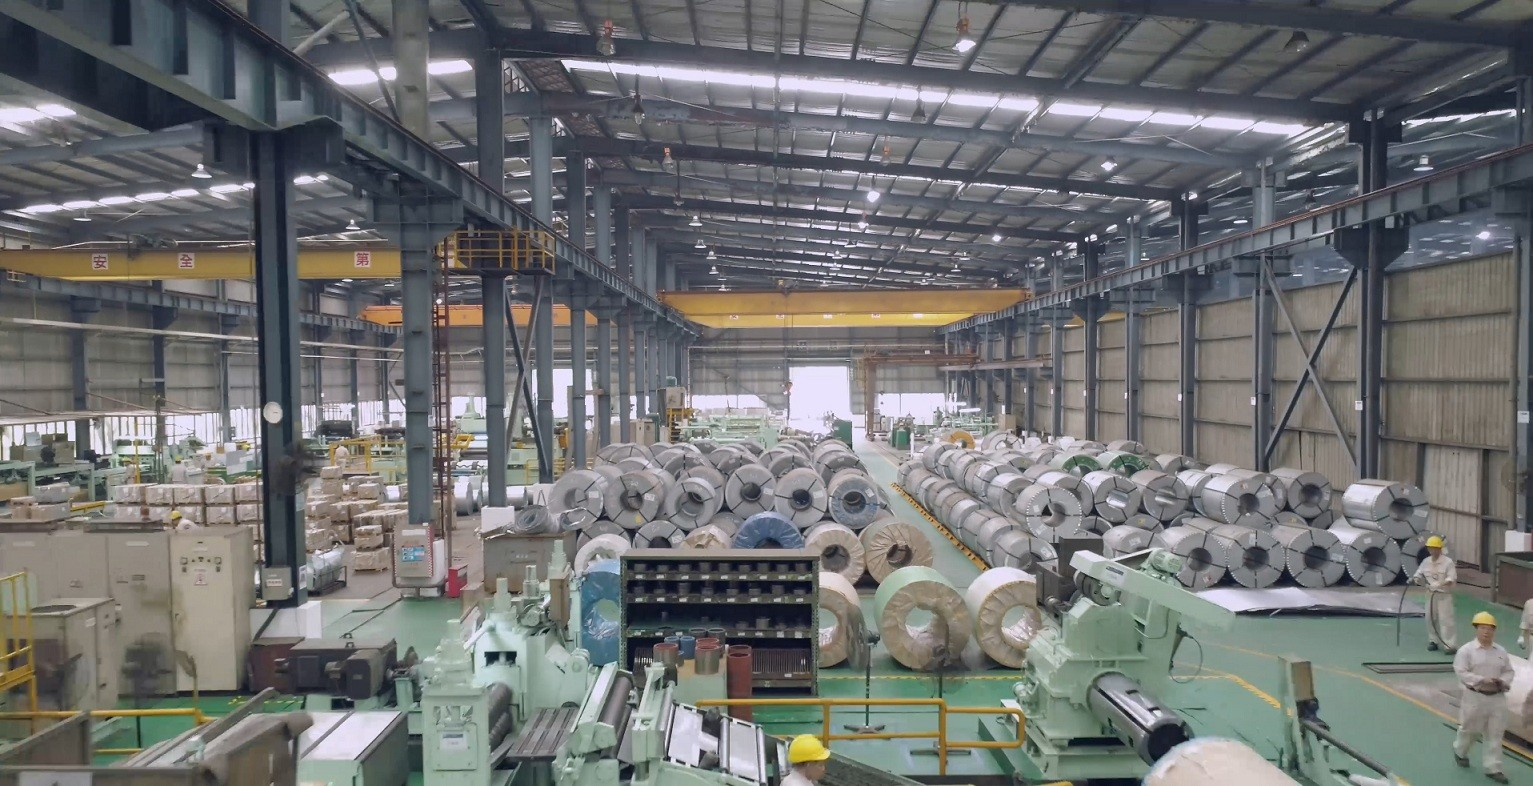 Mayer stainless steel pipe and fitting workshop with coils